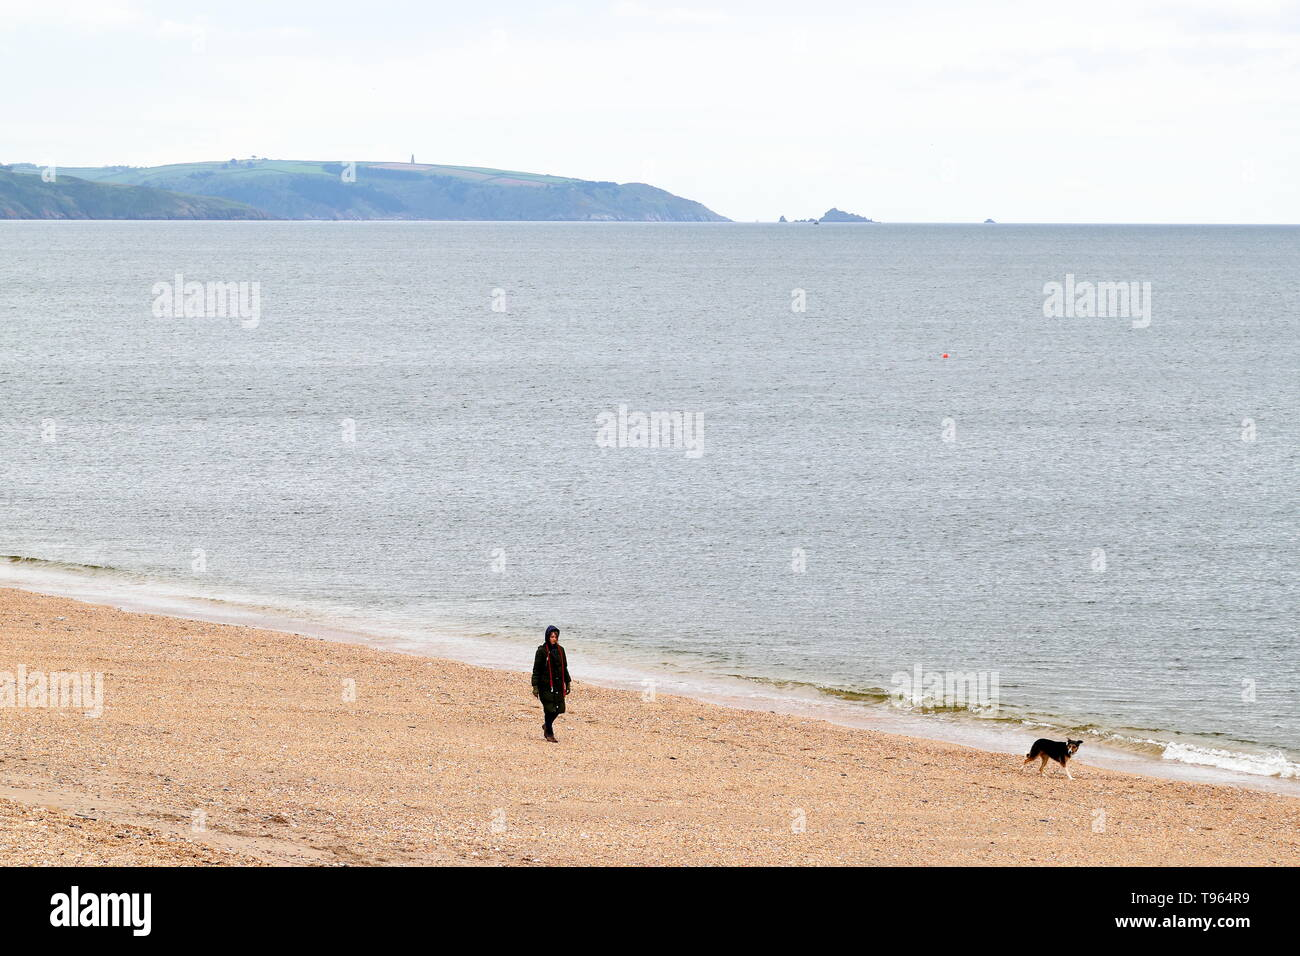 A dogwalker on the beach of Slapton Sands near Torcross, Deveon, UK - Stock Image